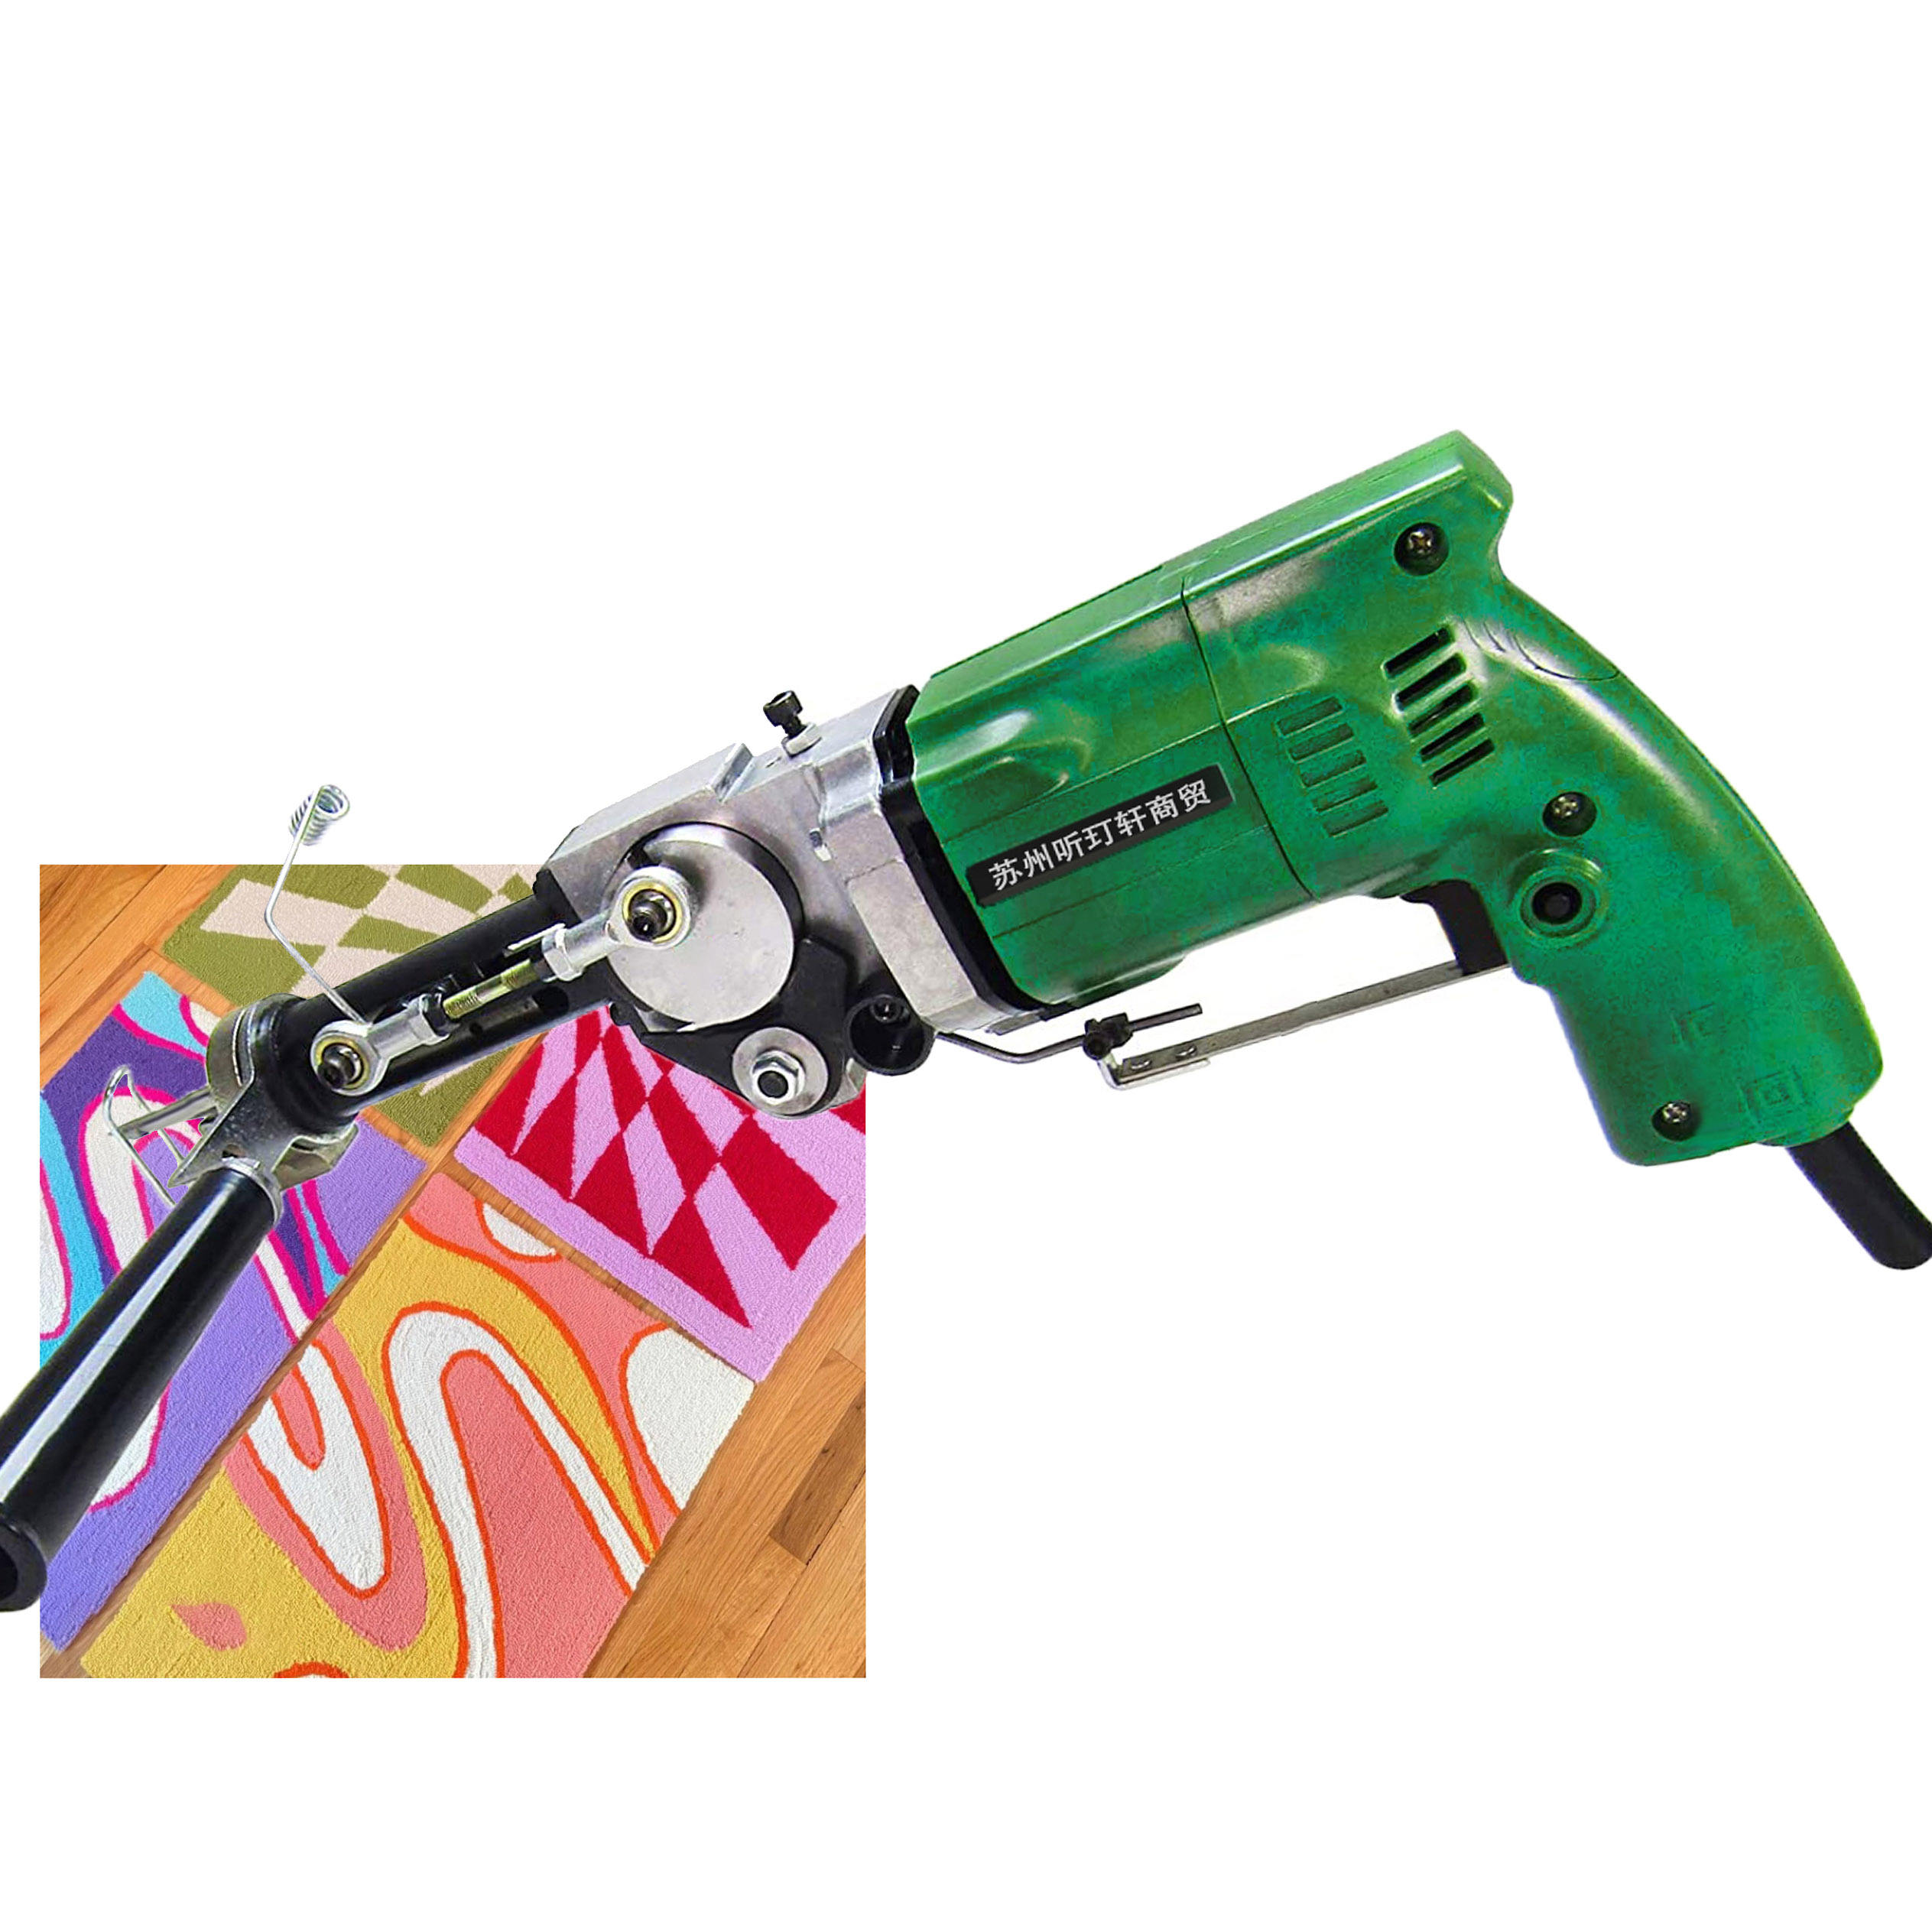 ak-1/ak2 220v Cut And Loop Pile Hand Rug Tufting Gun For Carpet